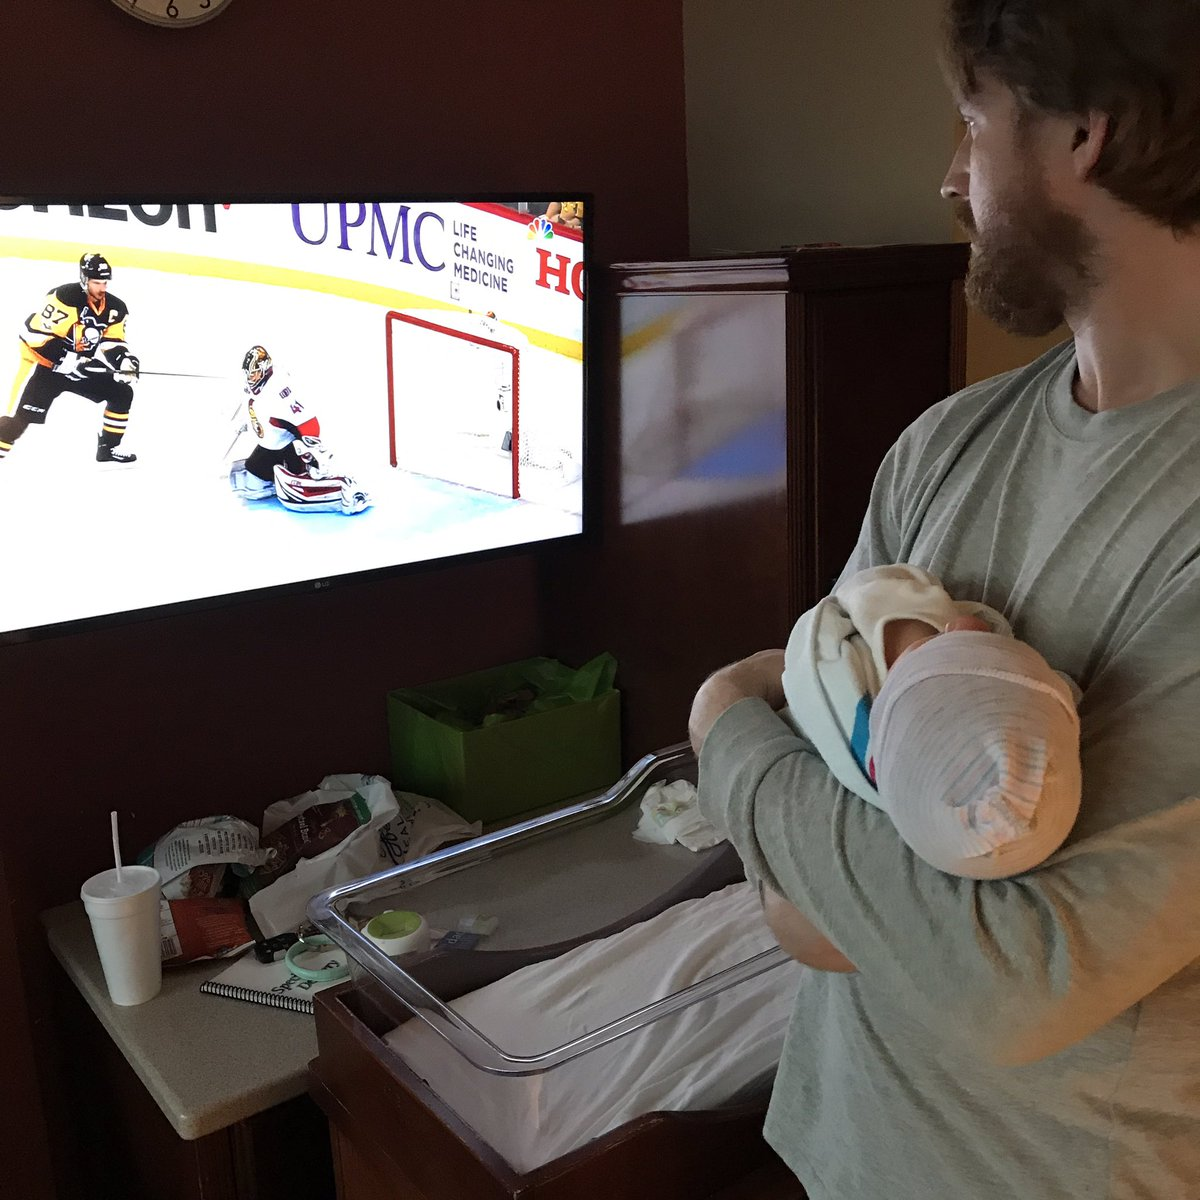 Not even 2 days old and already a hockey fan! @NHL @CanadiensMTL https://t.co/h0STK9SoKd